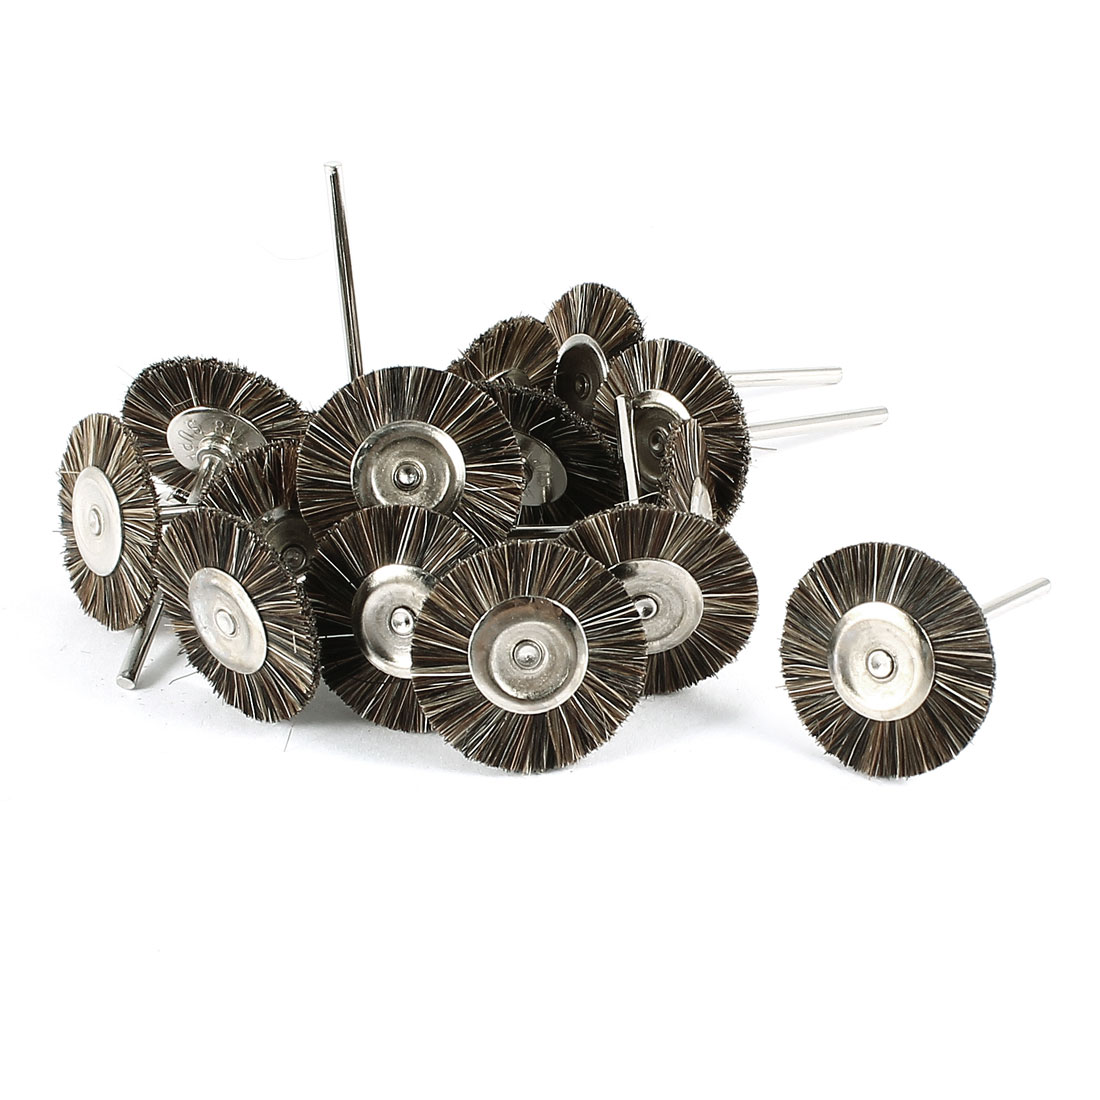 15 Pcs 25mm Dia Gray Nylon Brush Polishing Wheel Polishers for Rotary Tool